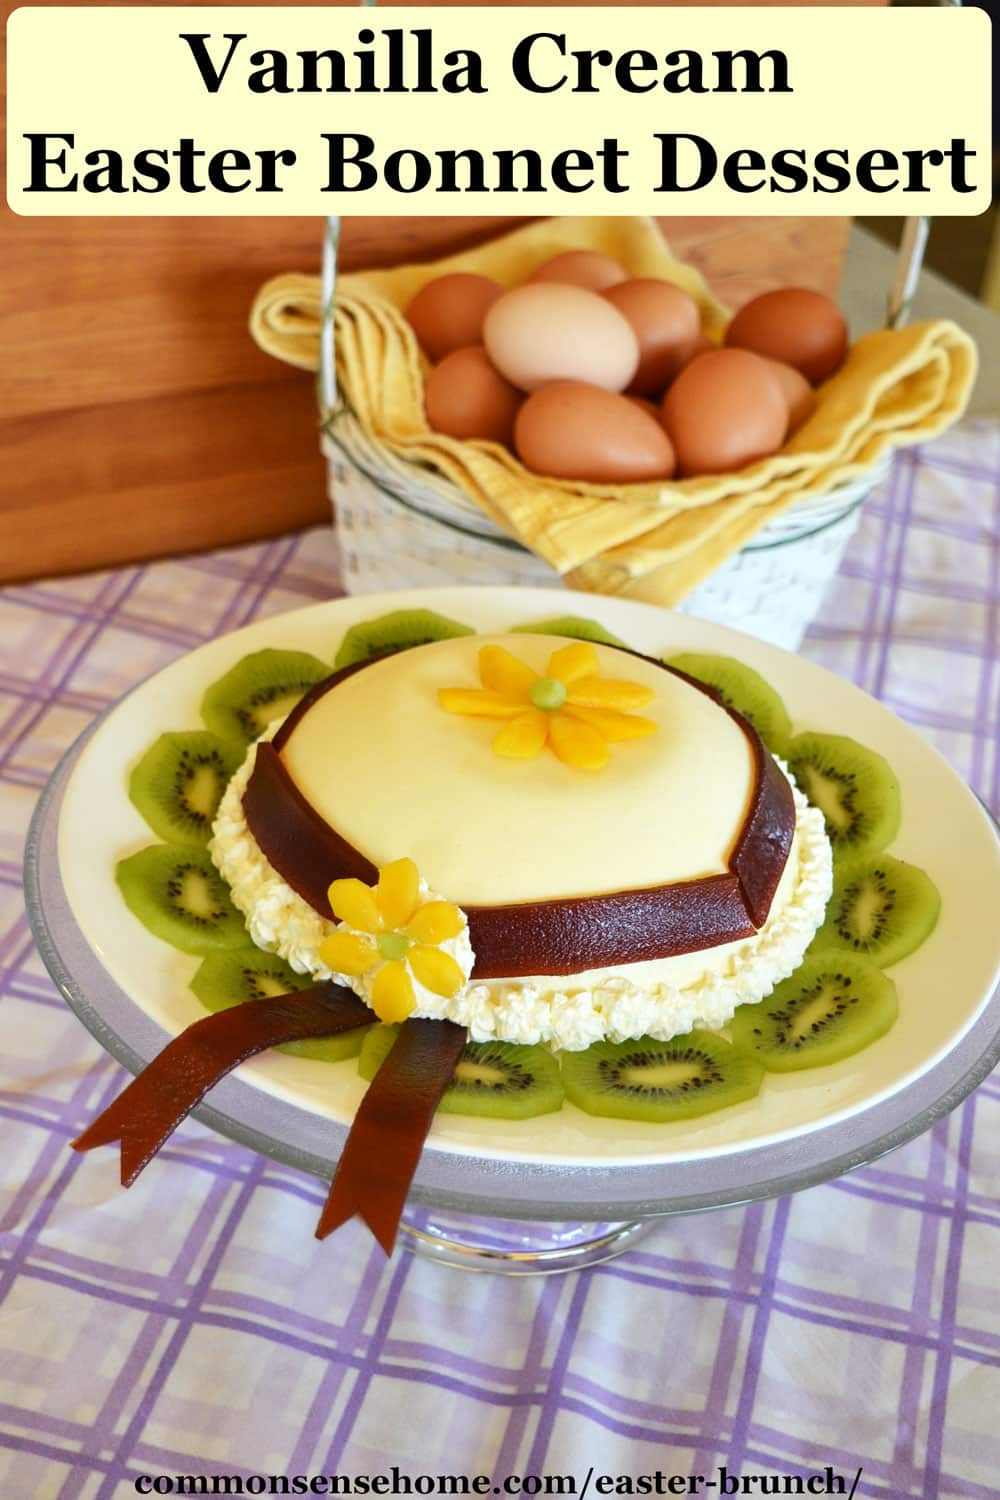 Vanilla Cream Easter Bonnet Dessert